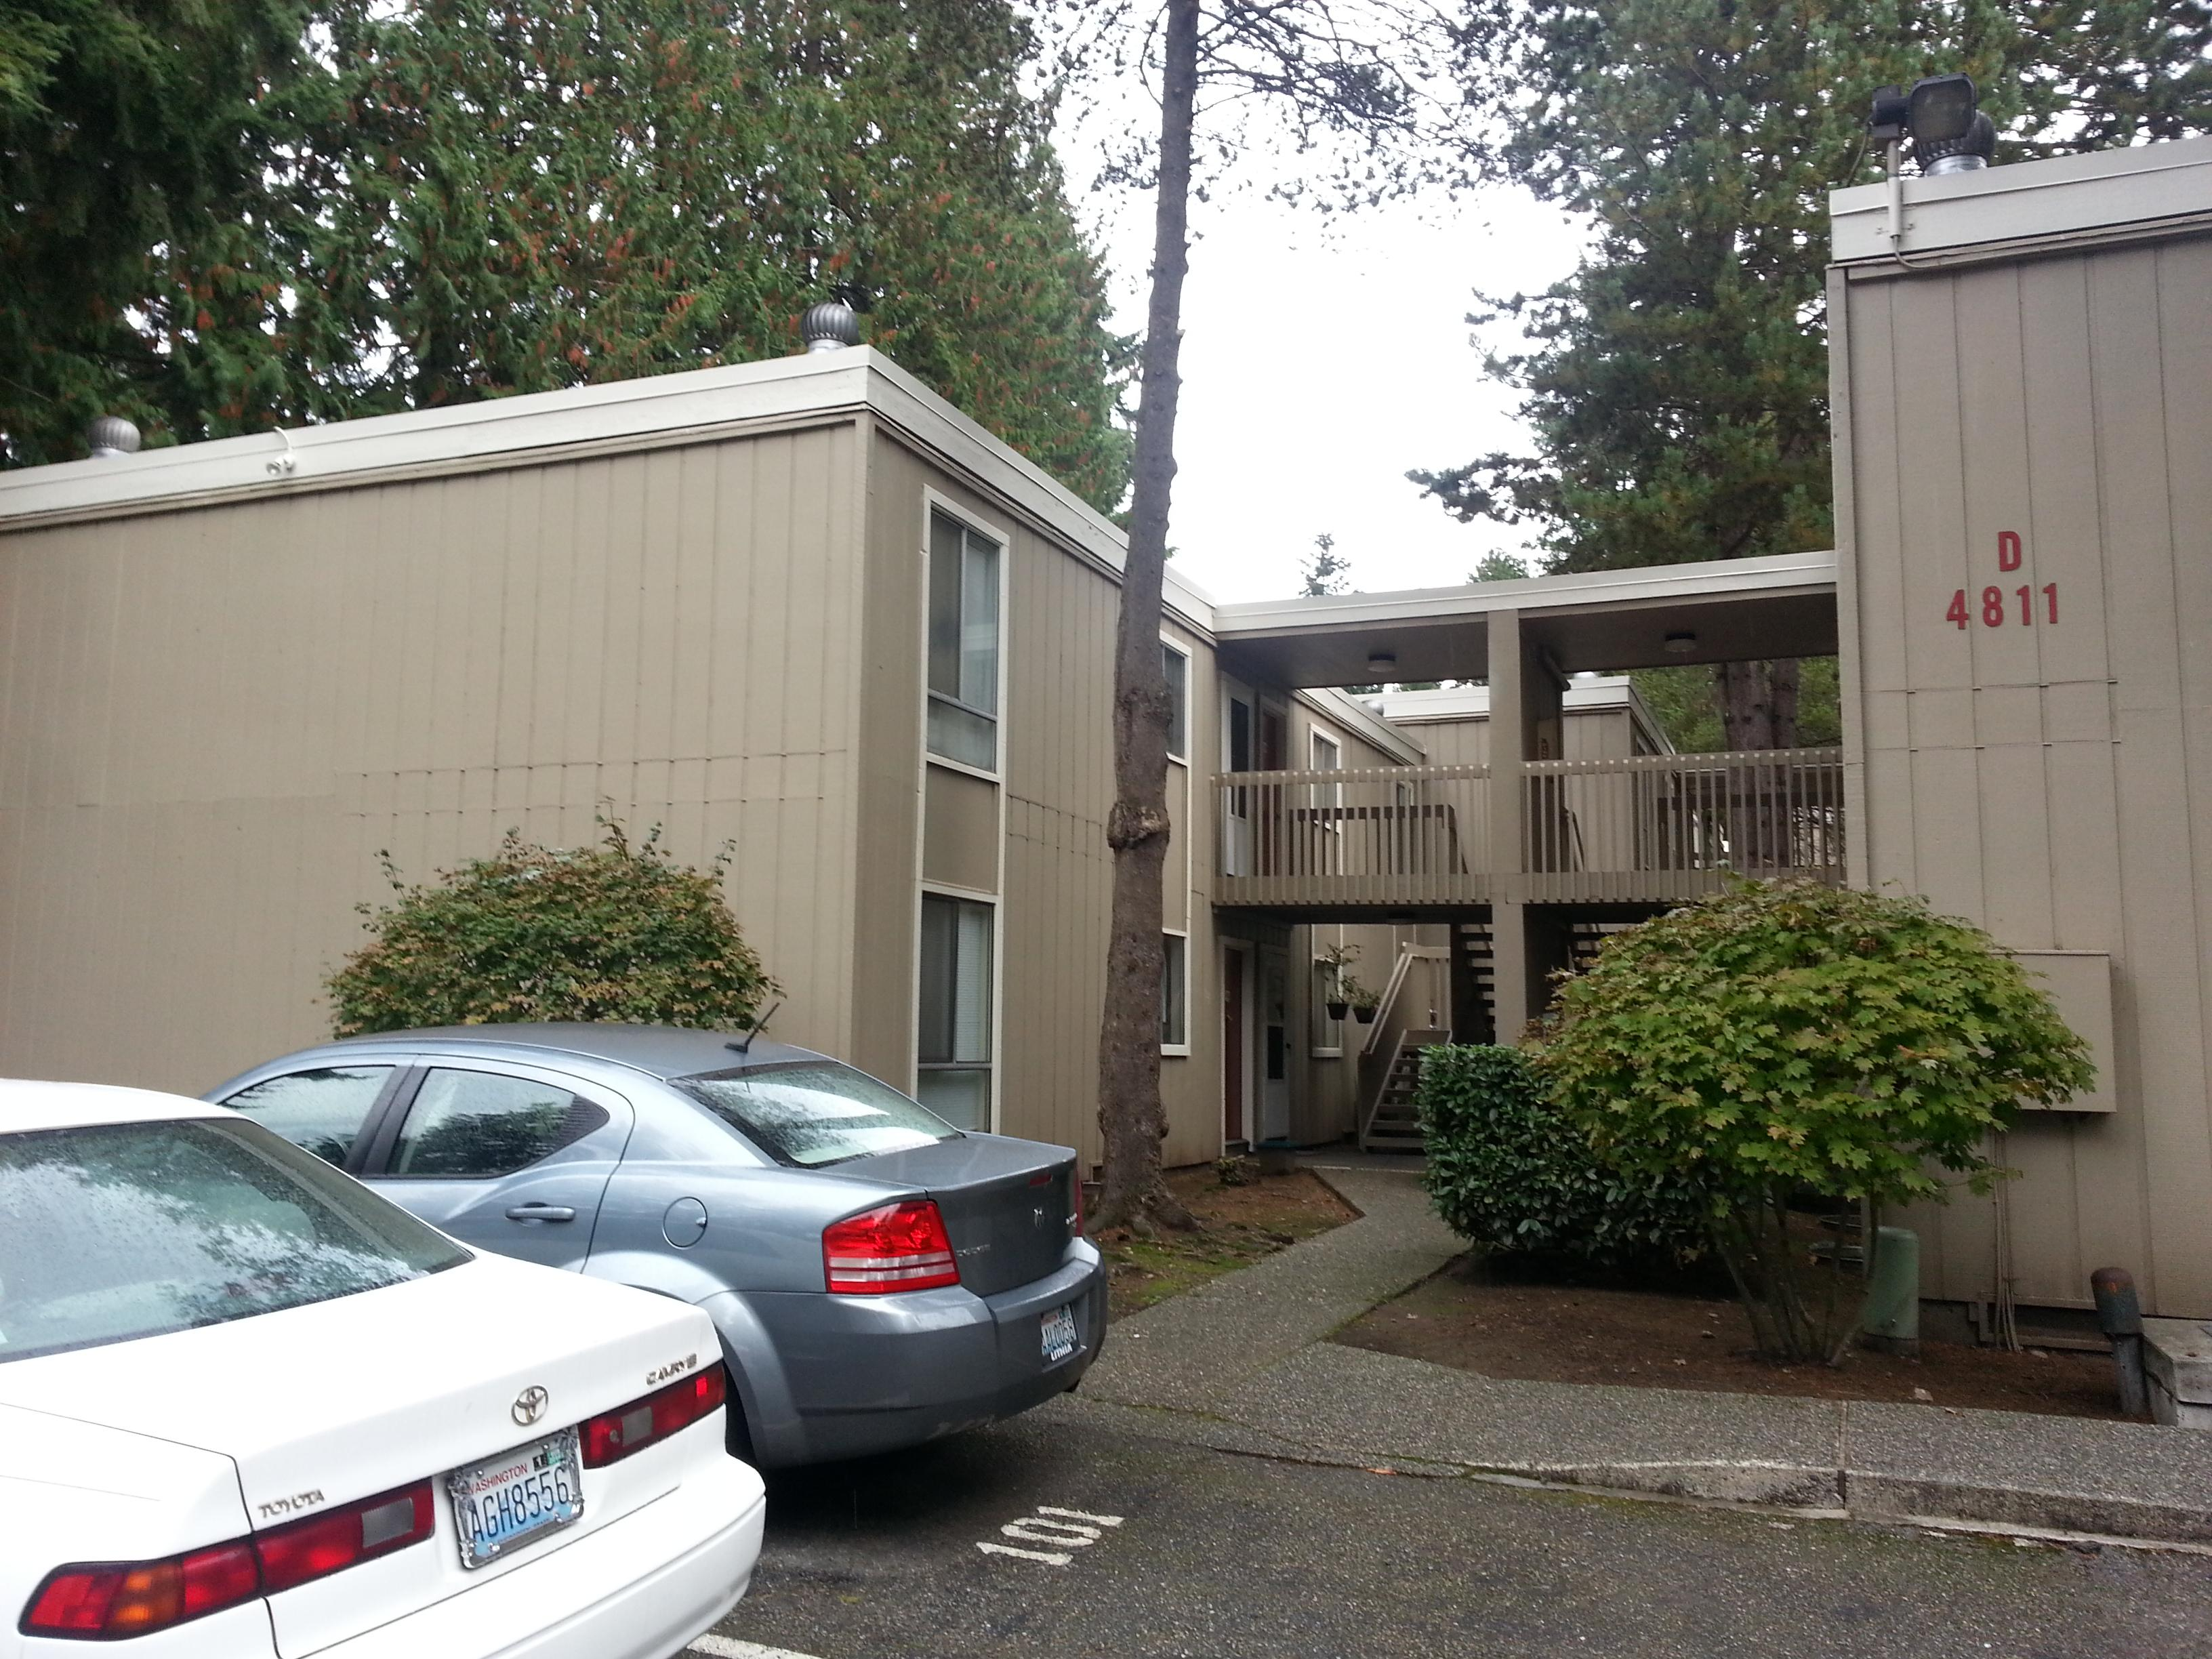 4811 180th St SW # D104, Lynnwood, WA 98036